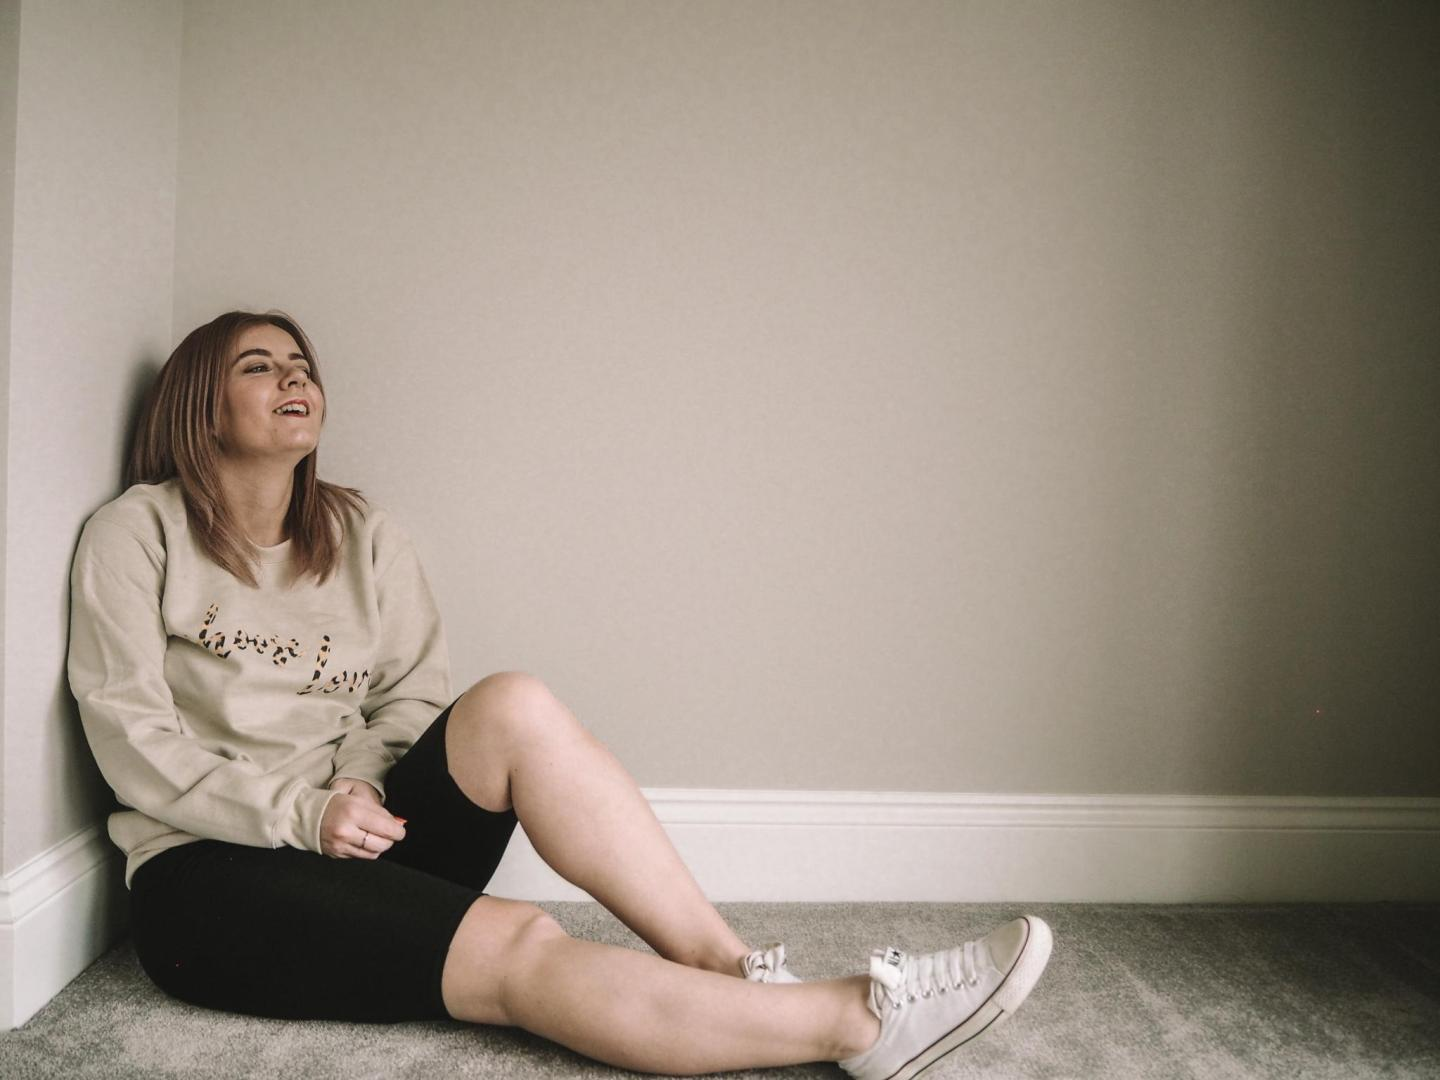 Emma aka Harmony Blaze relaxing. She is wearing a beige 'choose love' sweater, black cycling shorts and white converse.